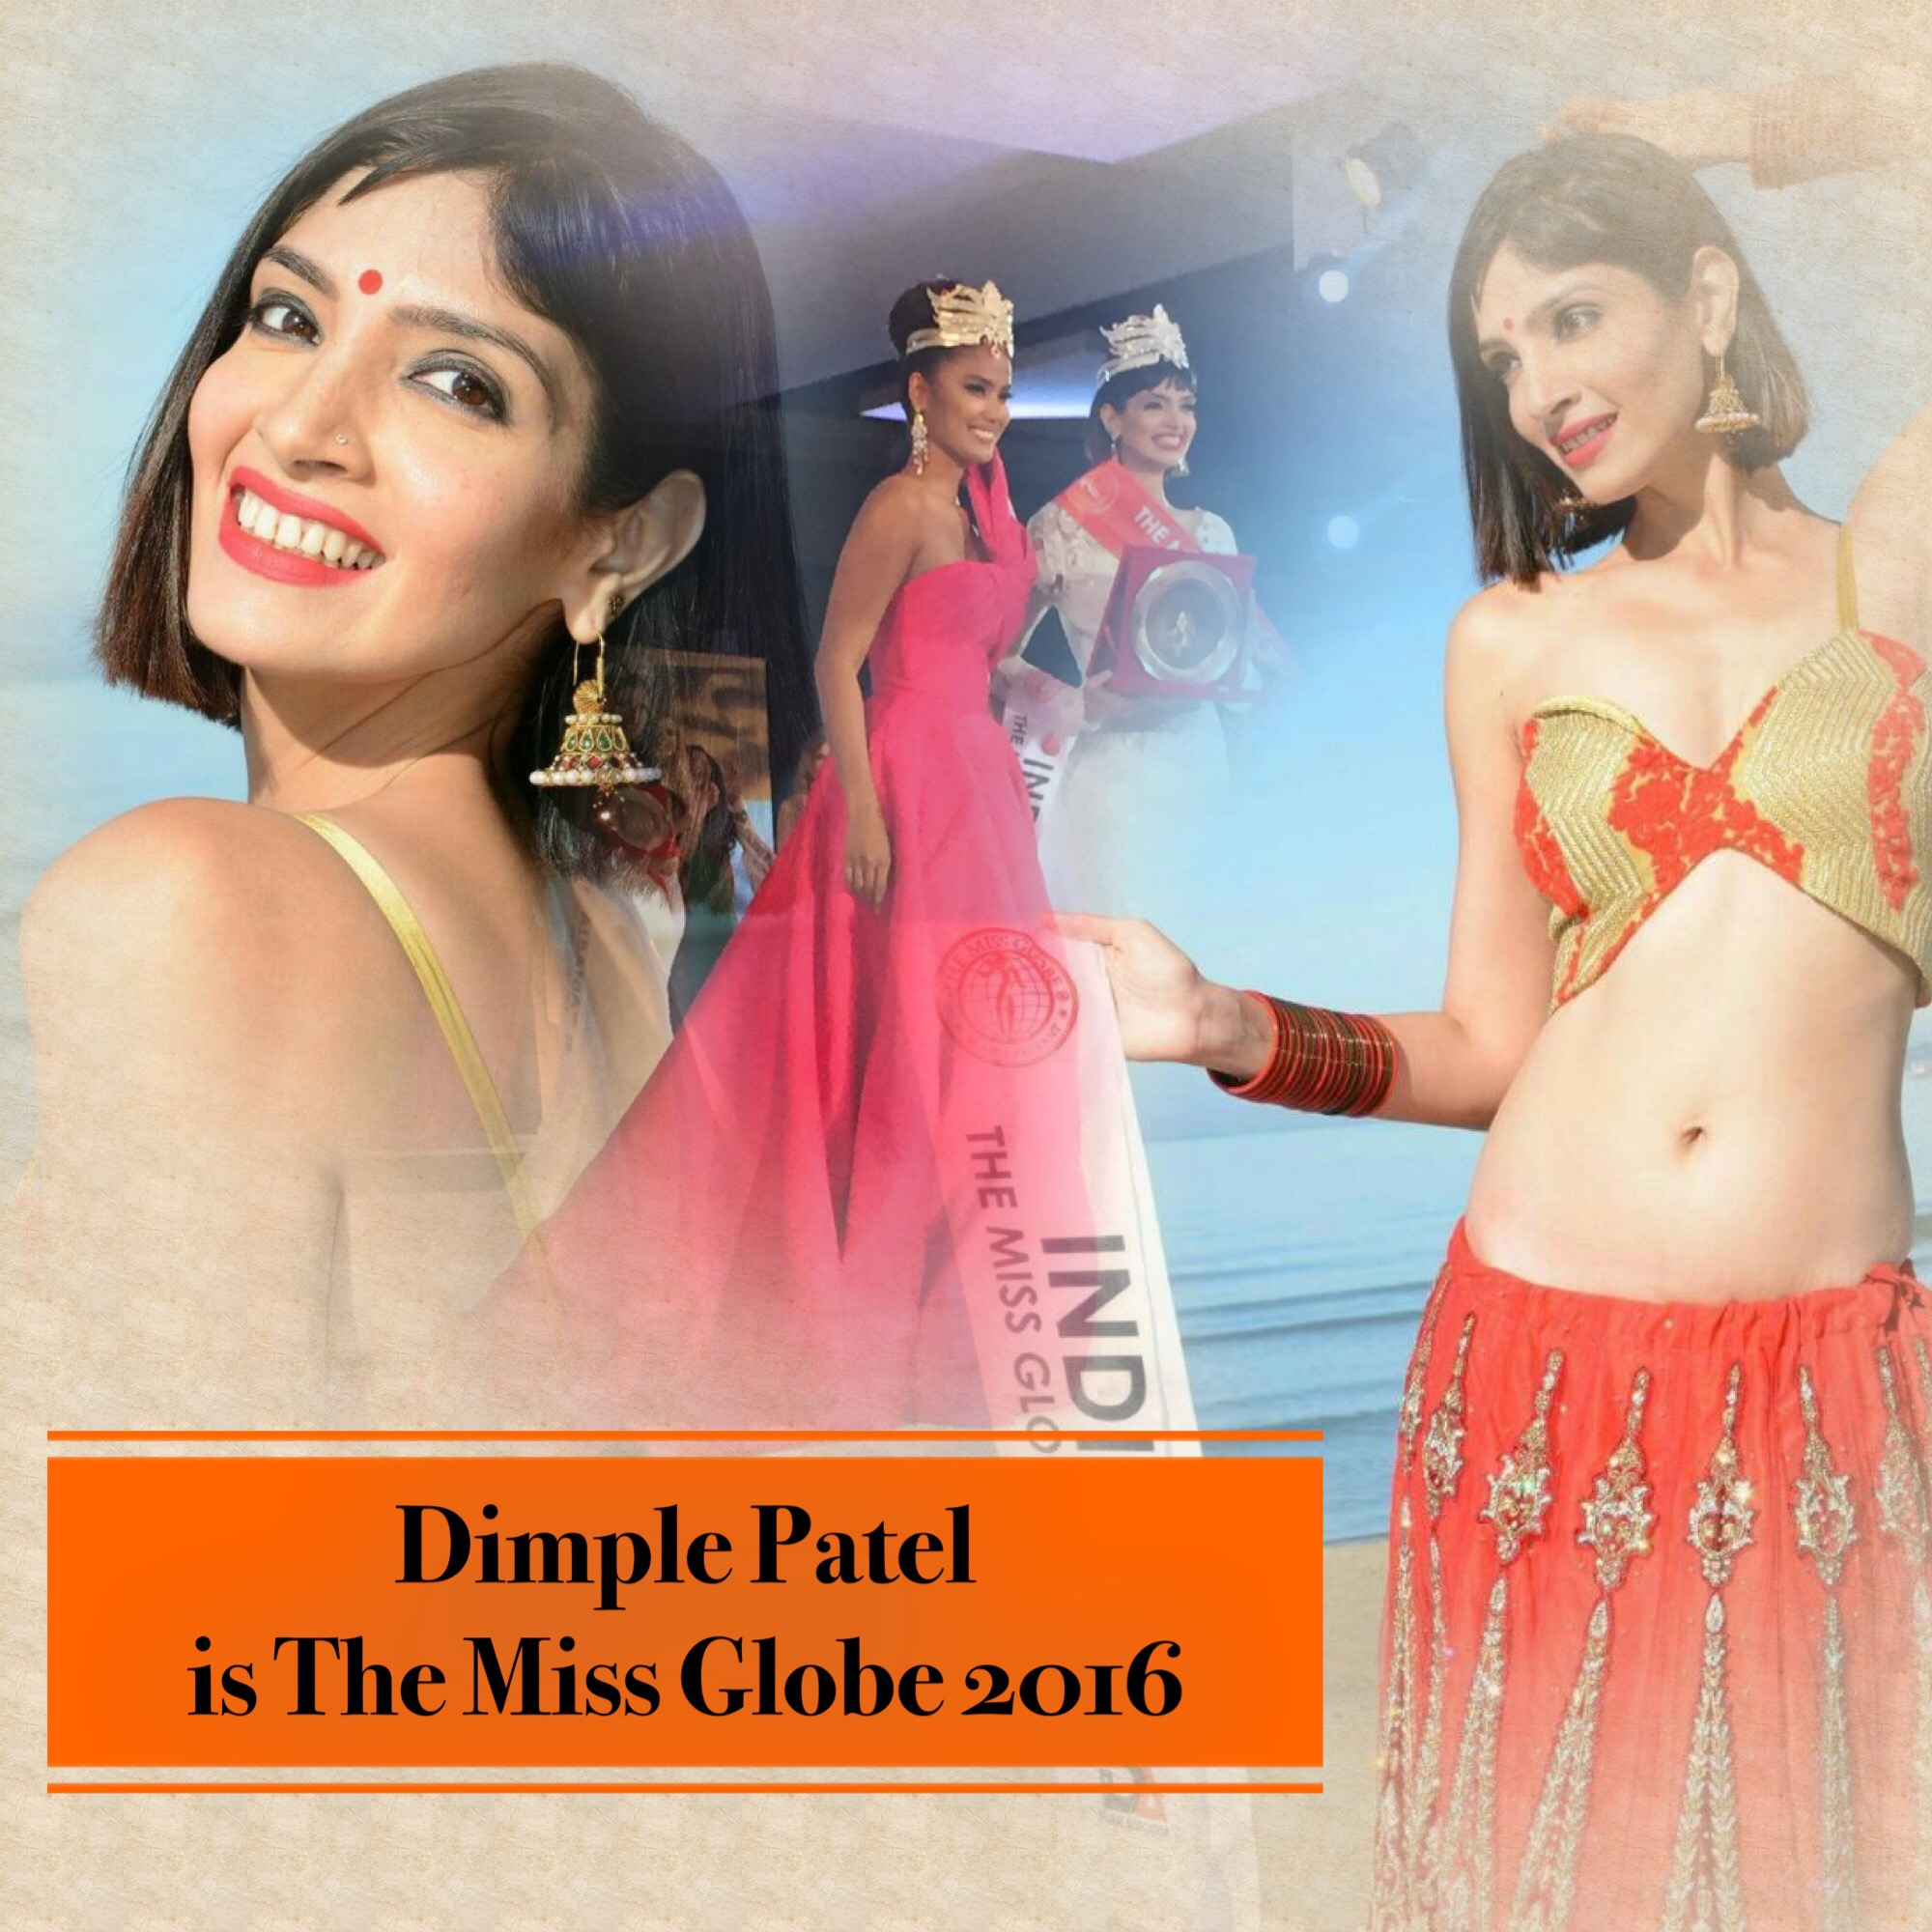 Dimple Patel of India takes The Miss Globe 2016